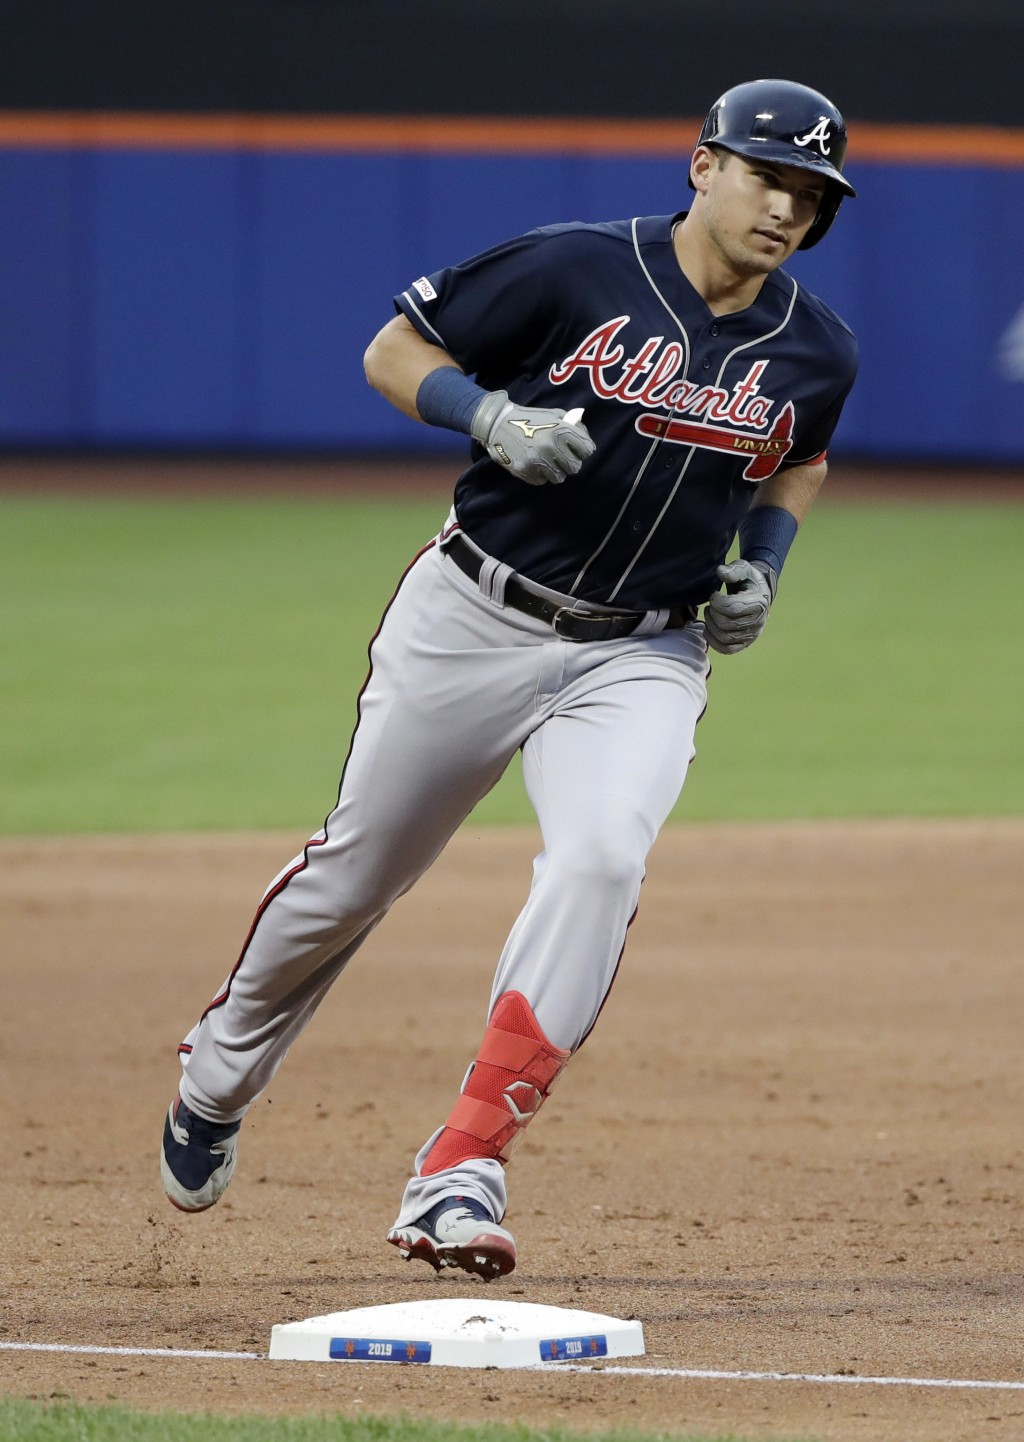 Atlanta Braves' Austin Riley runs the bases after hitting a two-run home run during the second inning of a baseball game against the New York Mets, Fr...